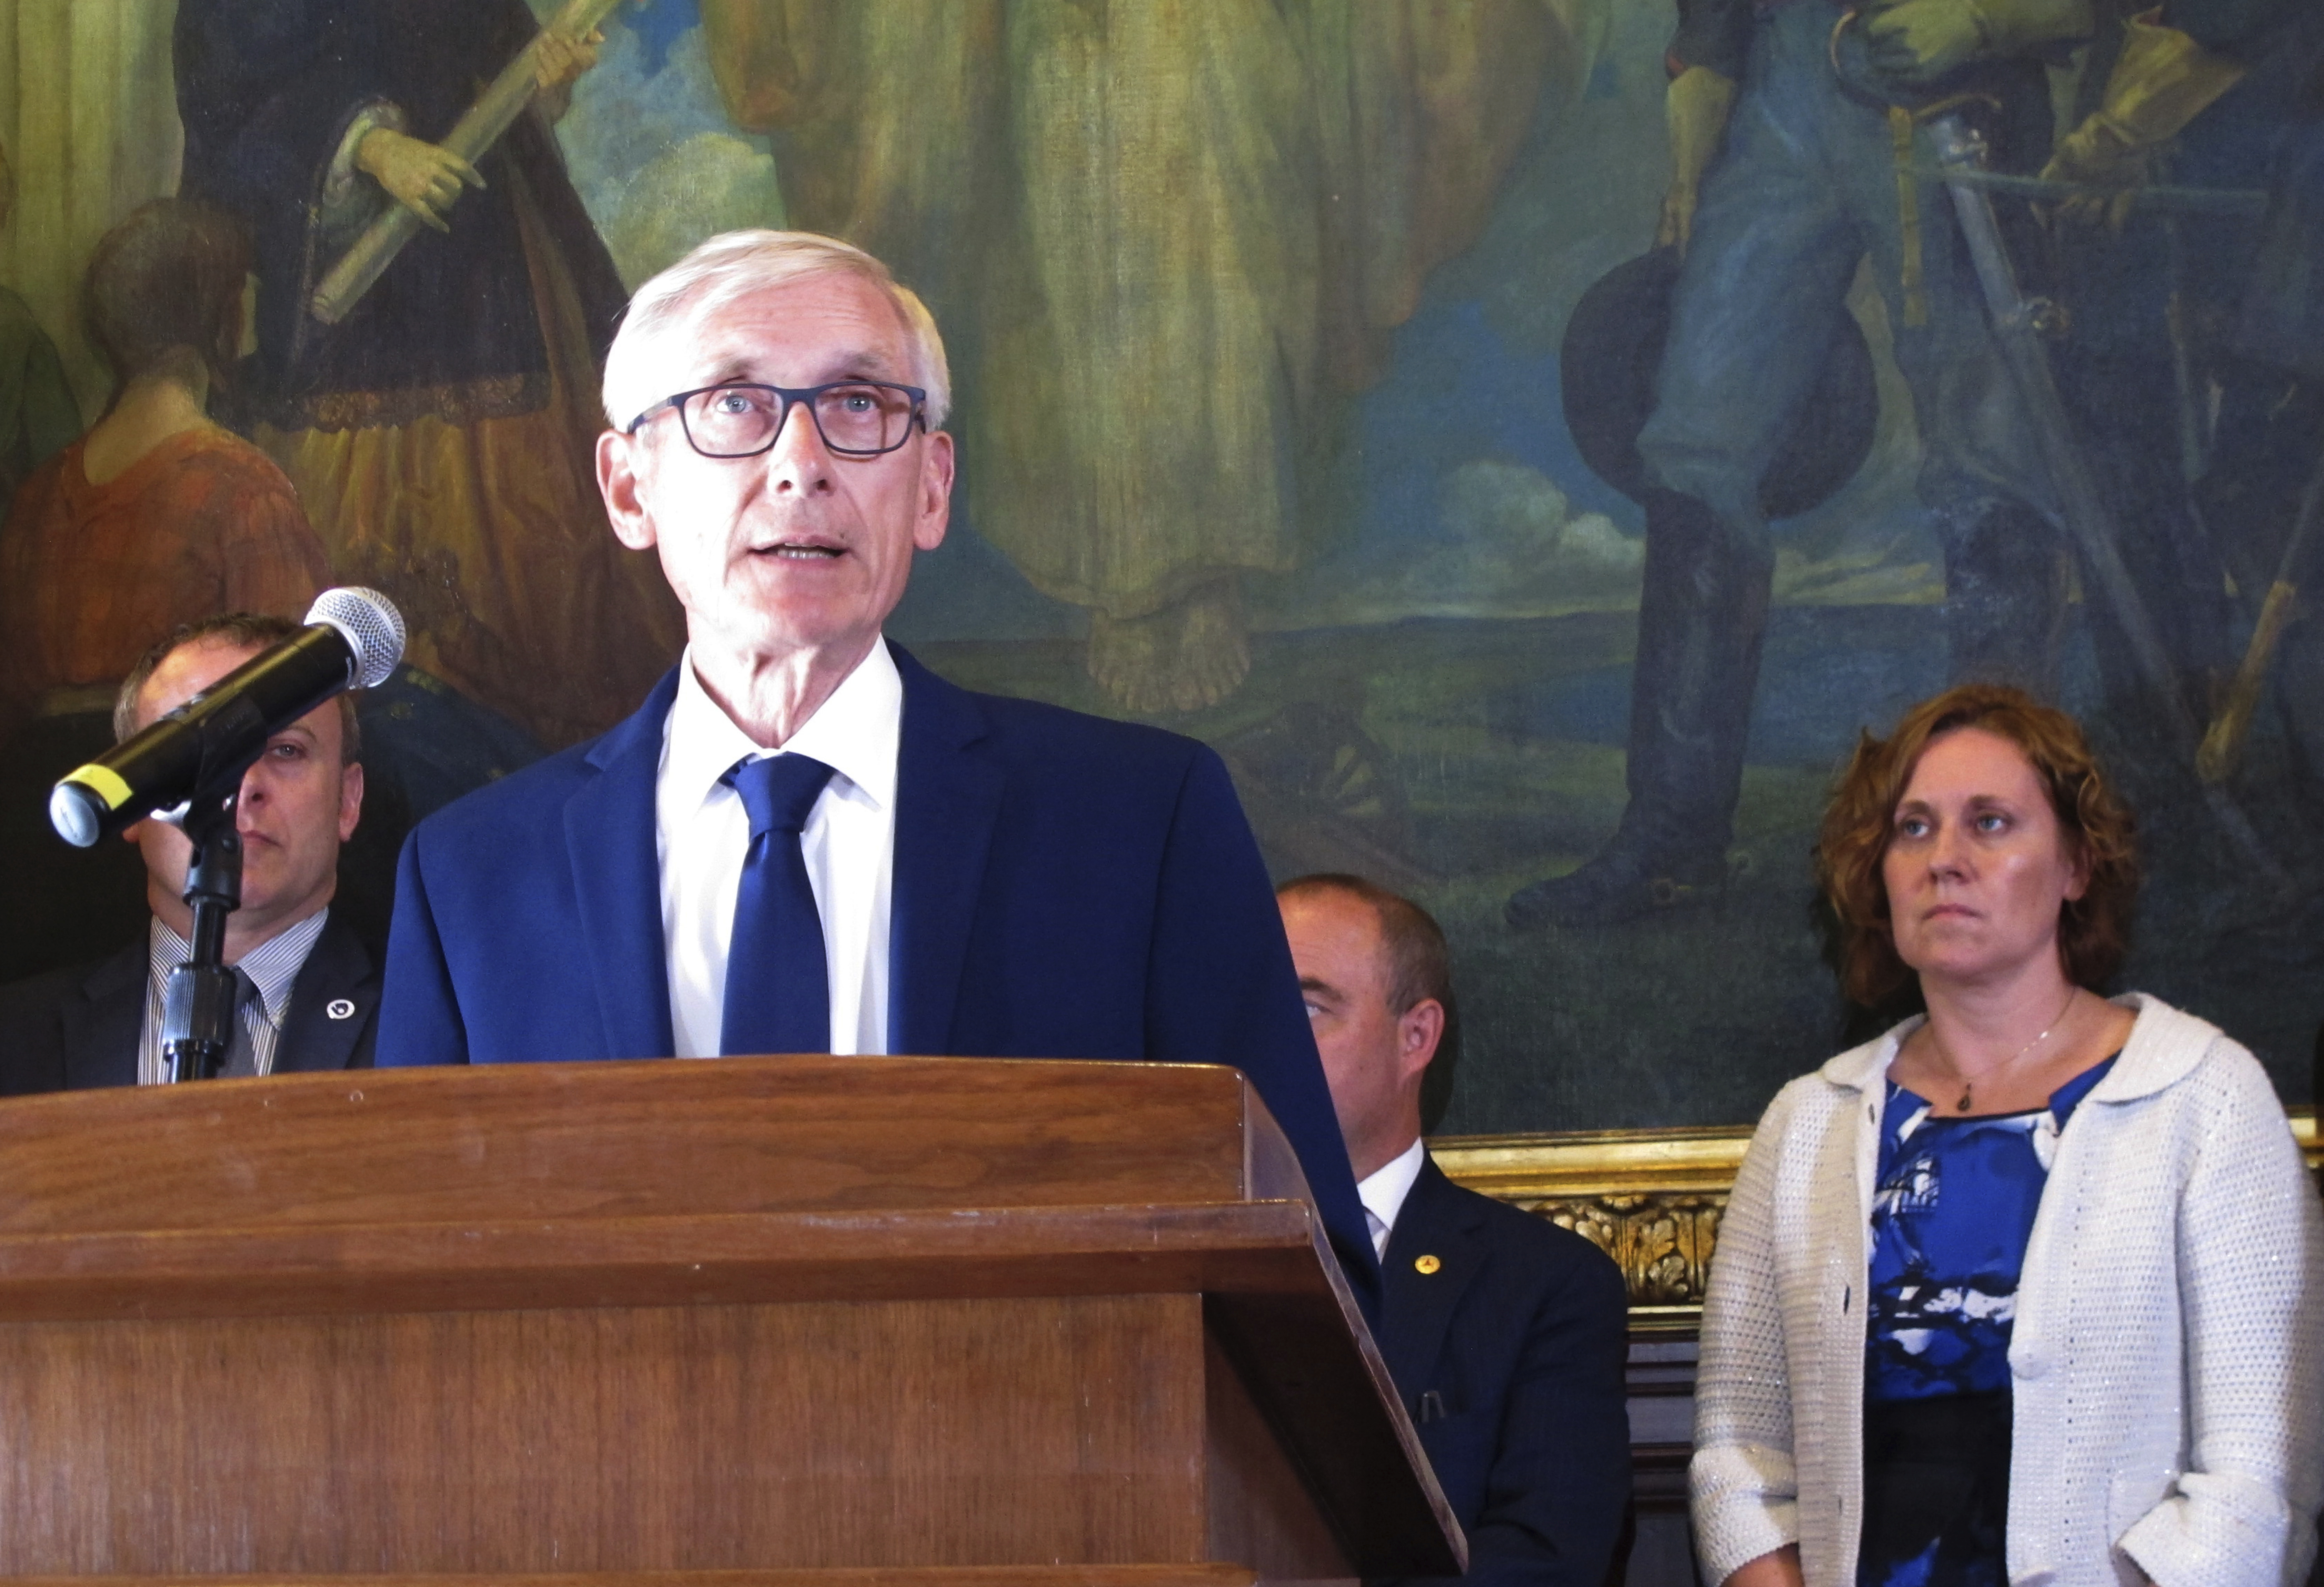 Conservative think tank sues Wisconsins Evers over access